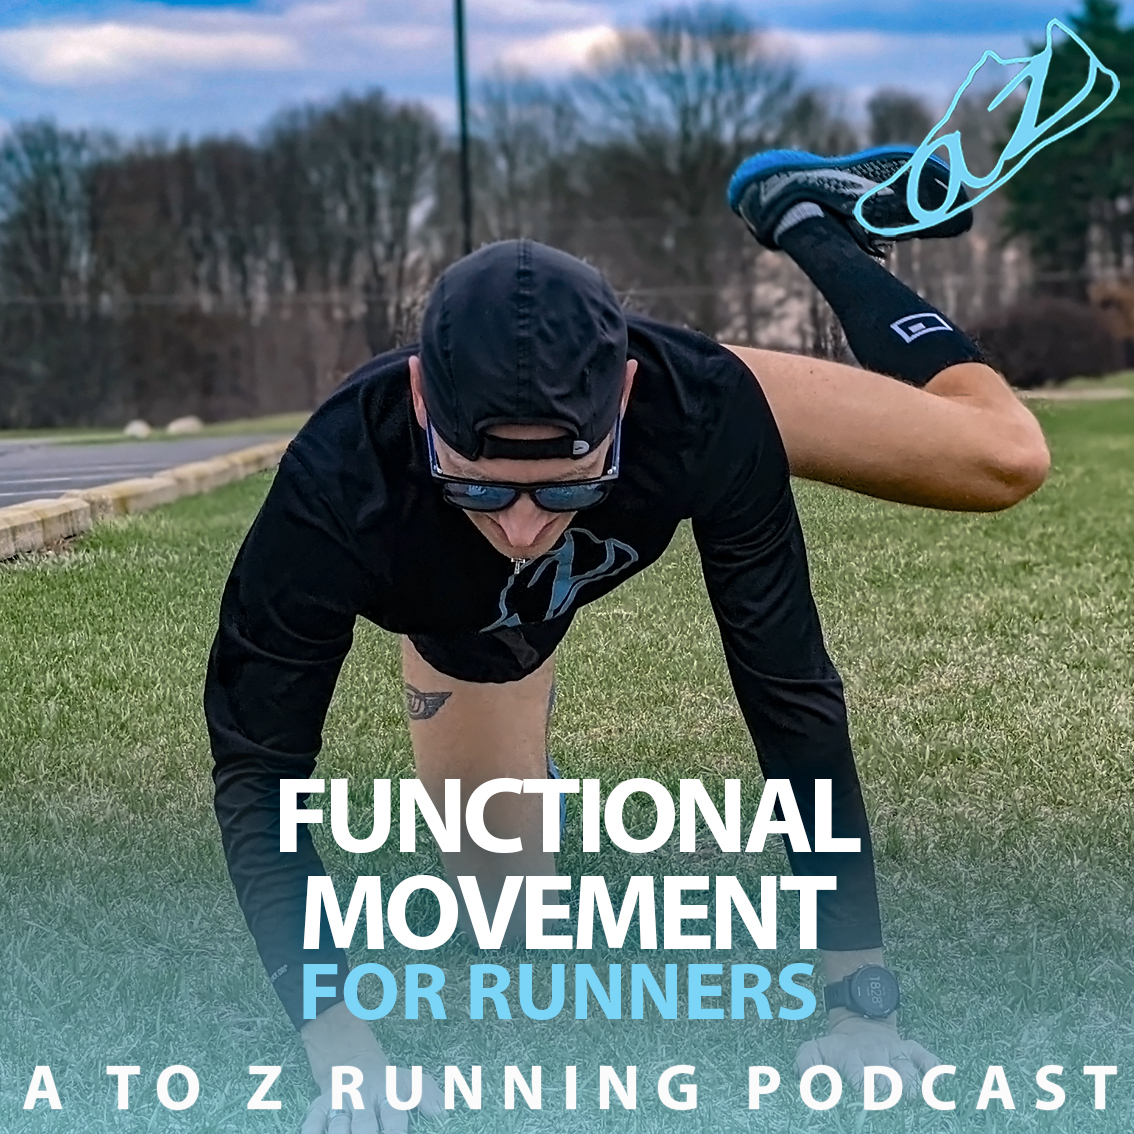 functional movement for runners podcat